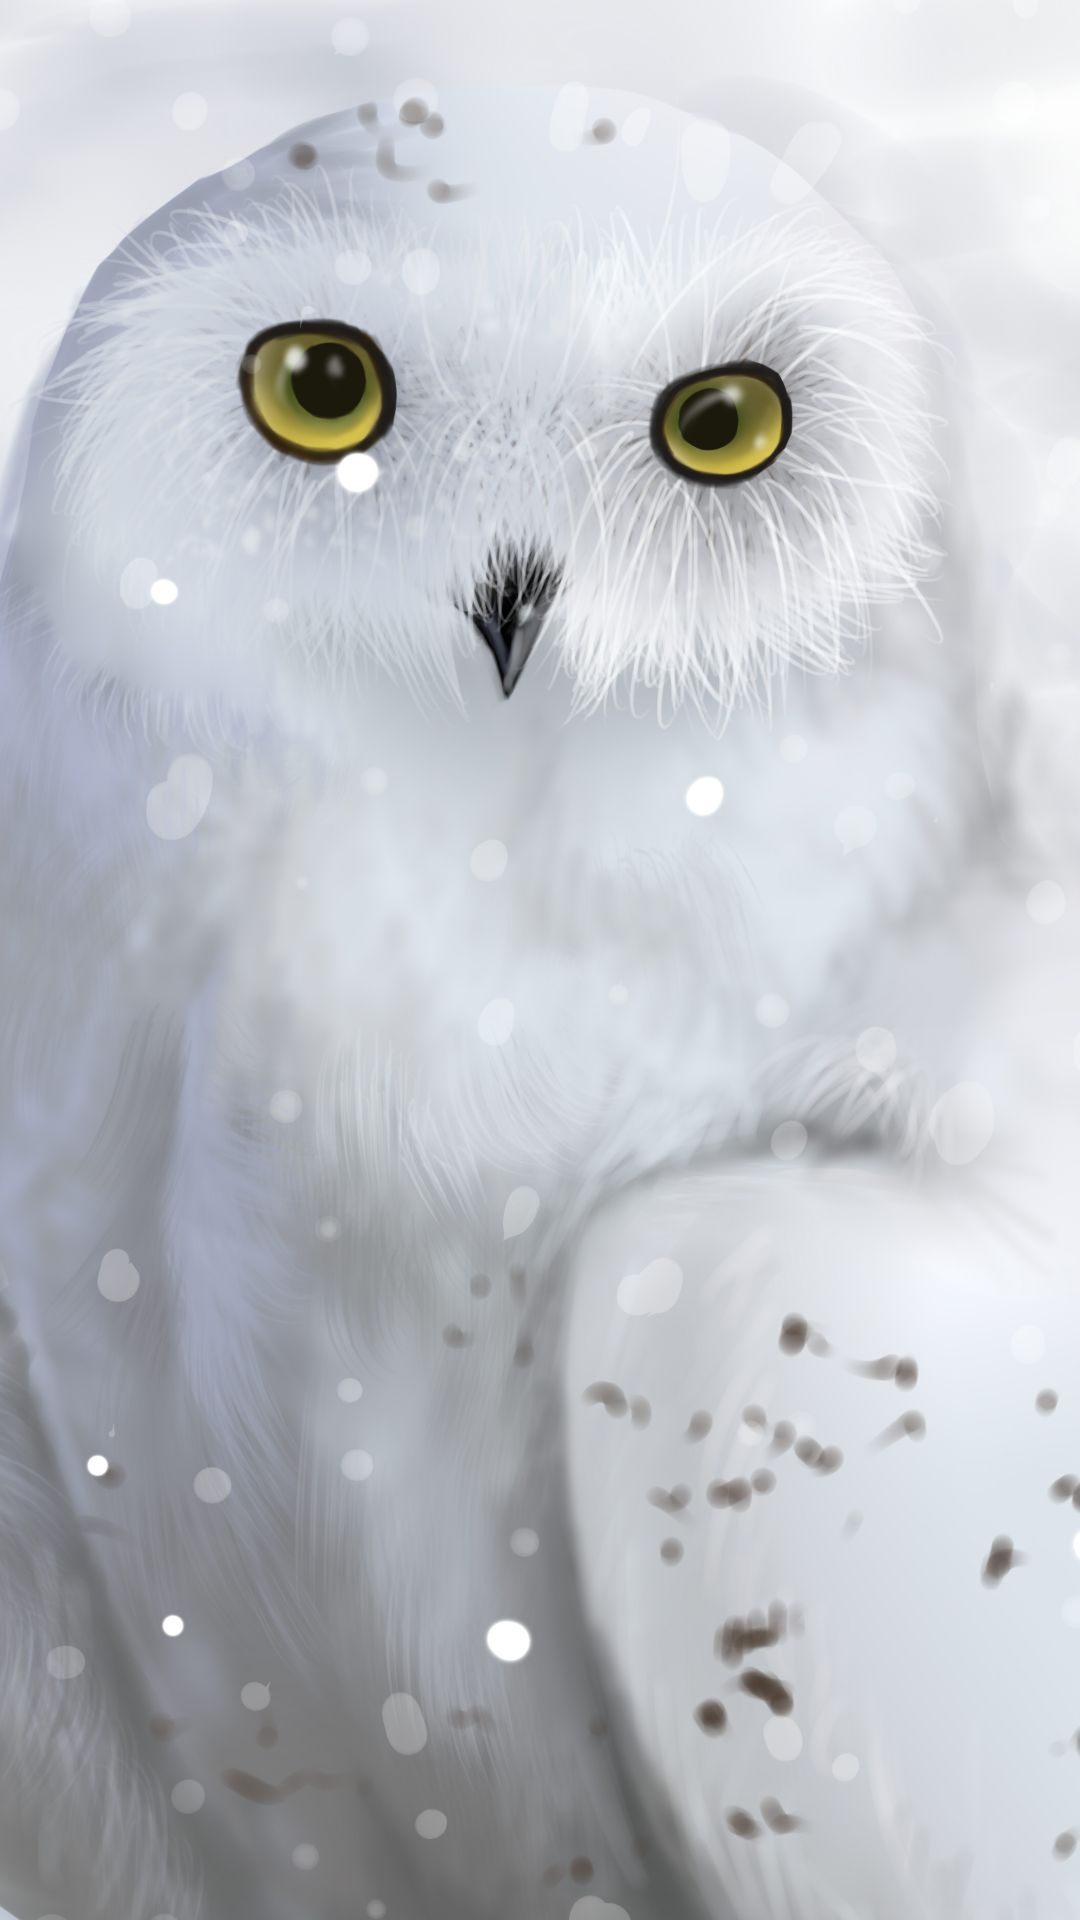 Snowy Owl 1080x1920 Mobile Wallpaper Owl Wallpaper